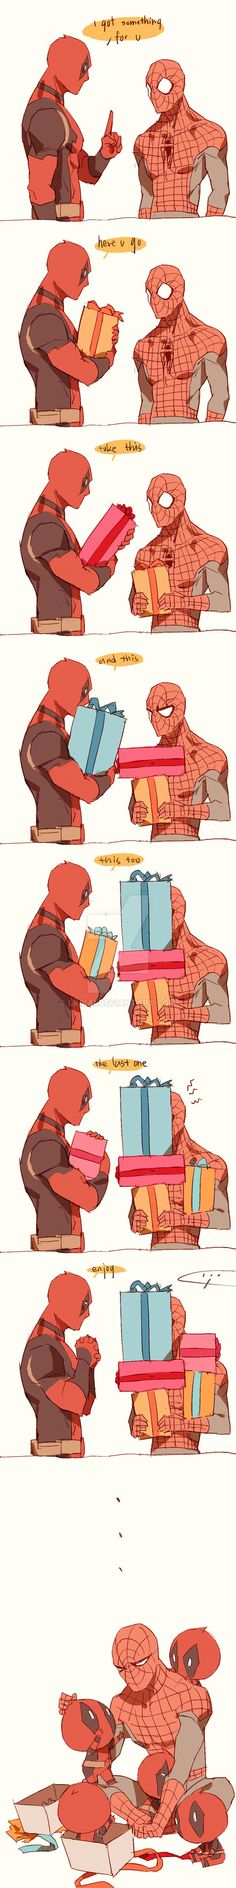 "spideypool208 by <a href=""http://LKiKAi.deviantart.com"" rel=""nofollow"" target=""_blank"">LKiKAi.deviantart...</a> on @DeviantArt"